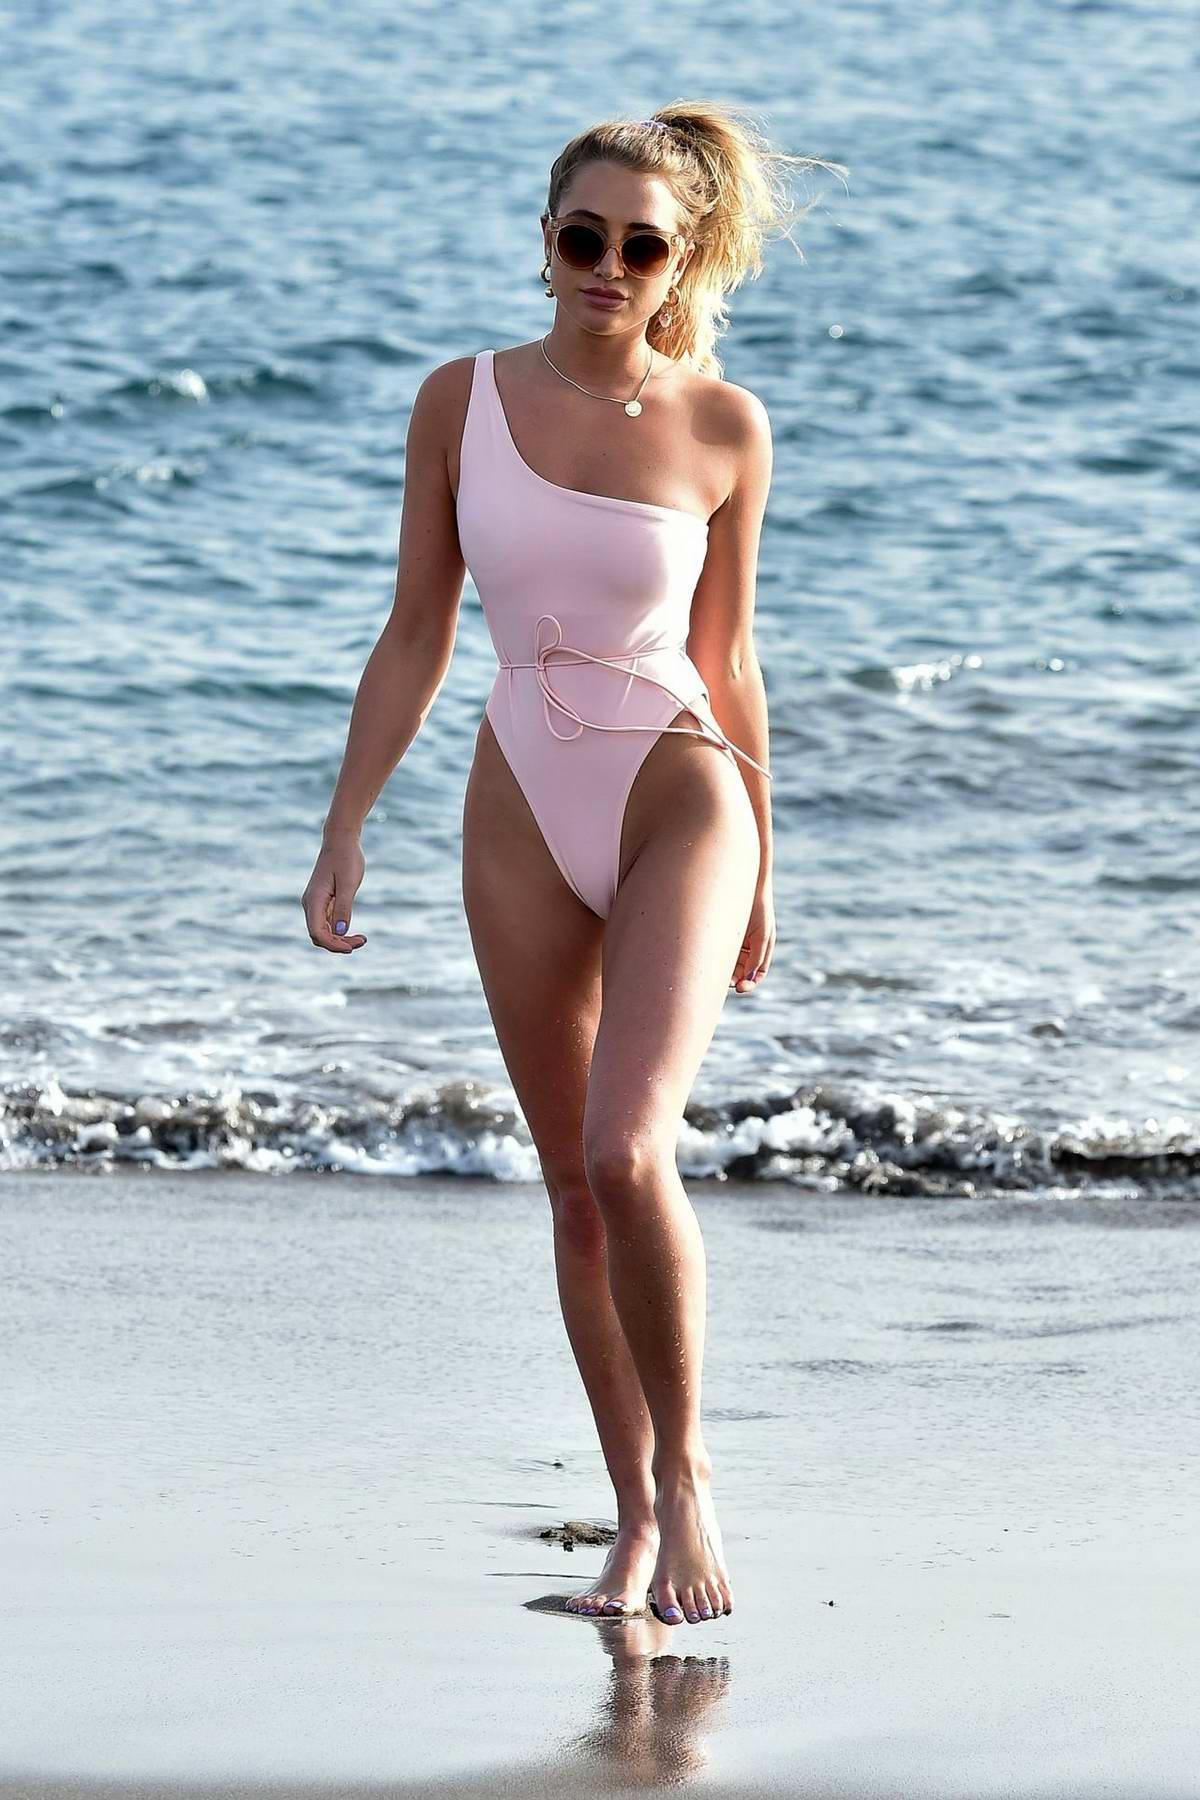 Georgia Harrison wears a light pink swimsuit while enjoying a day on the beach in Tenerife, Spain